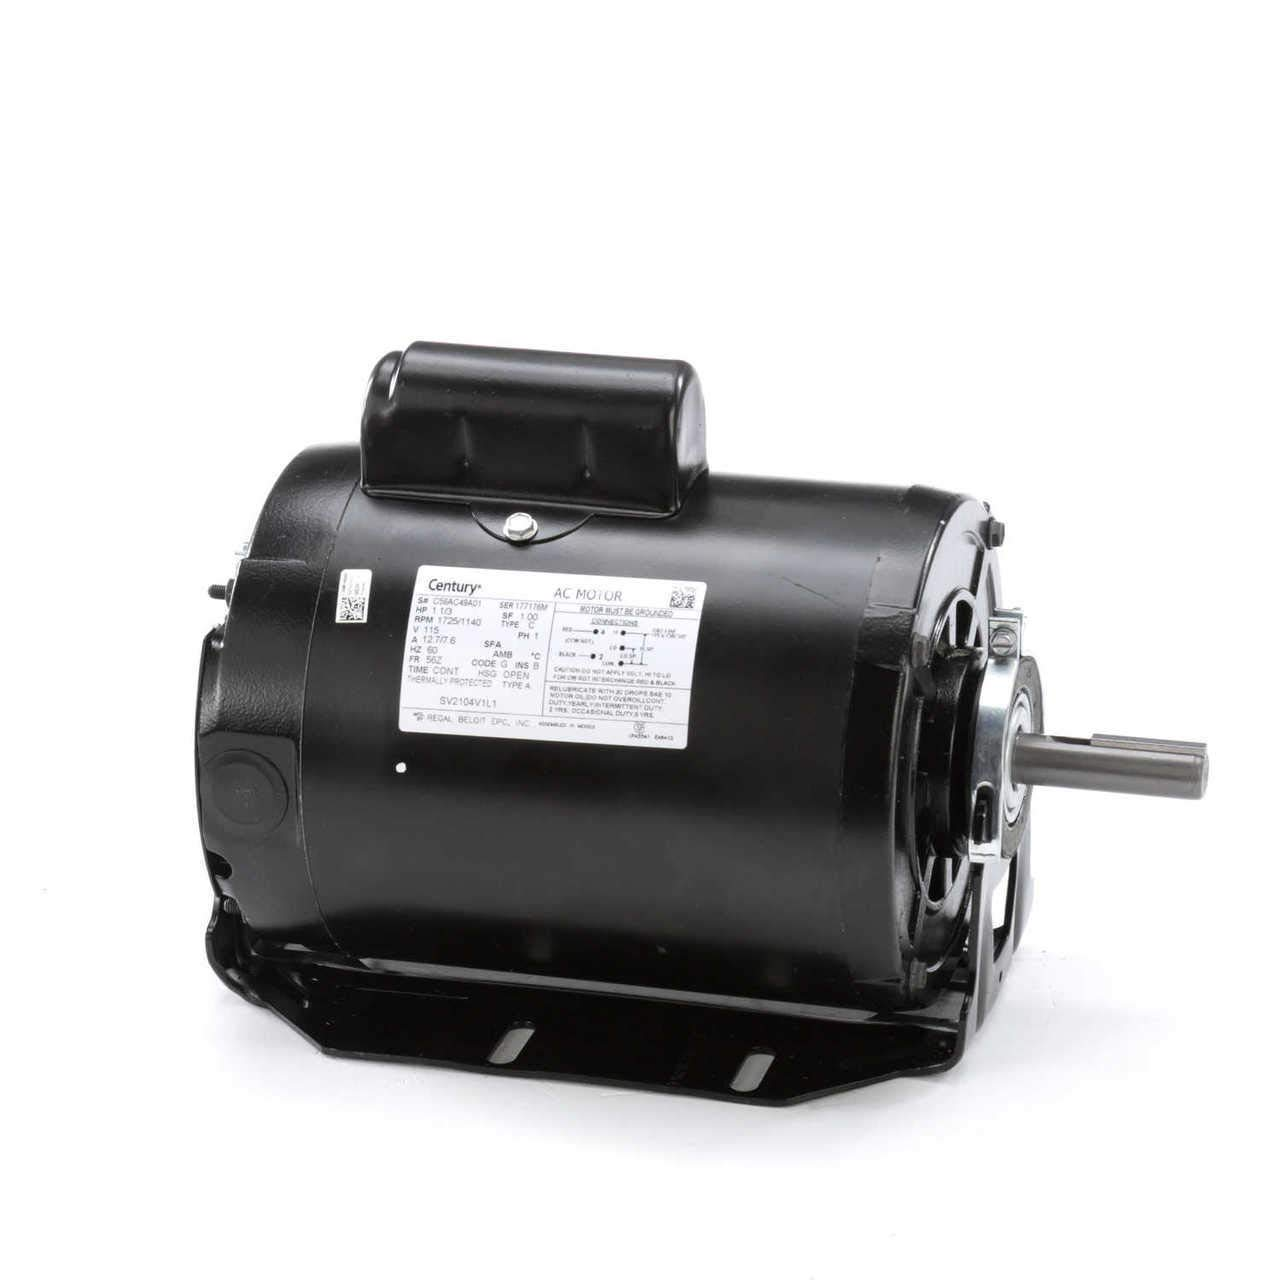 Evap Cooler Motor, 1 HP, 115V, 2 Speed